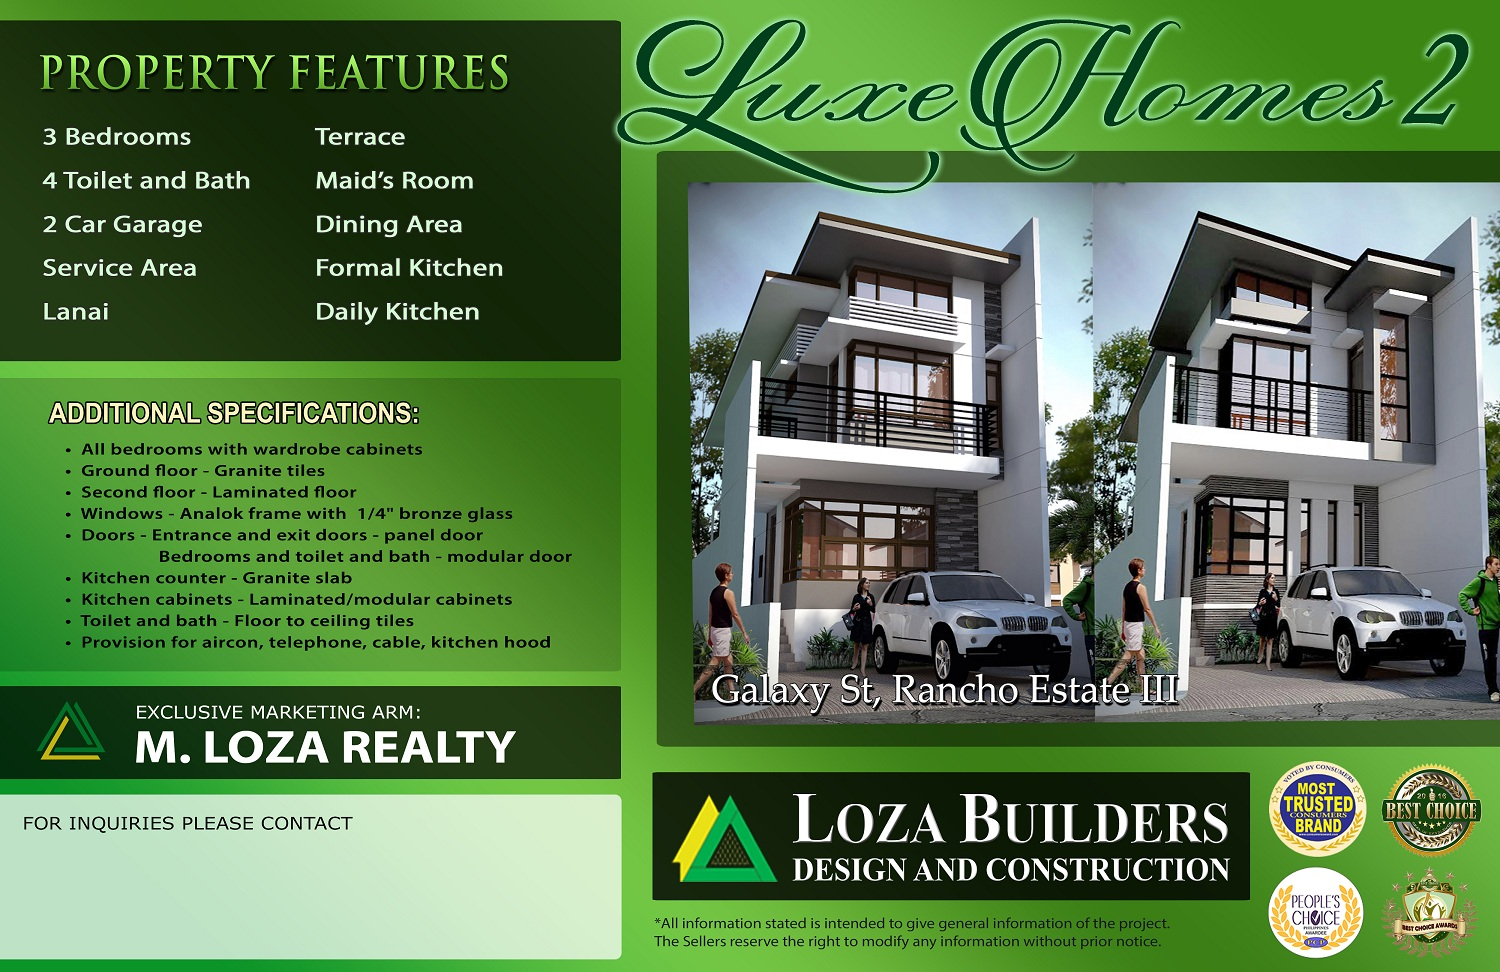 Luxe Homes 2 – Rancho Estate III, Marikina City | LOZA Builders ...